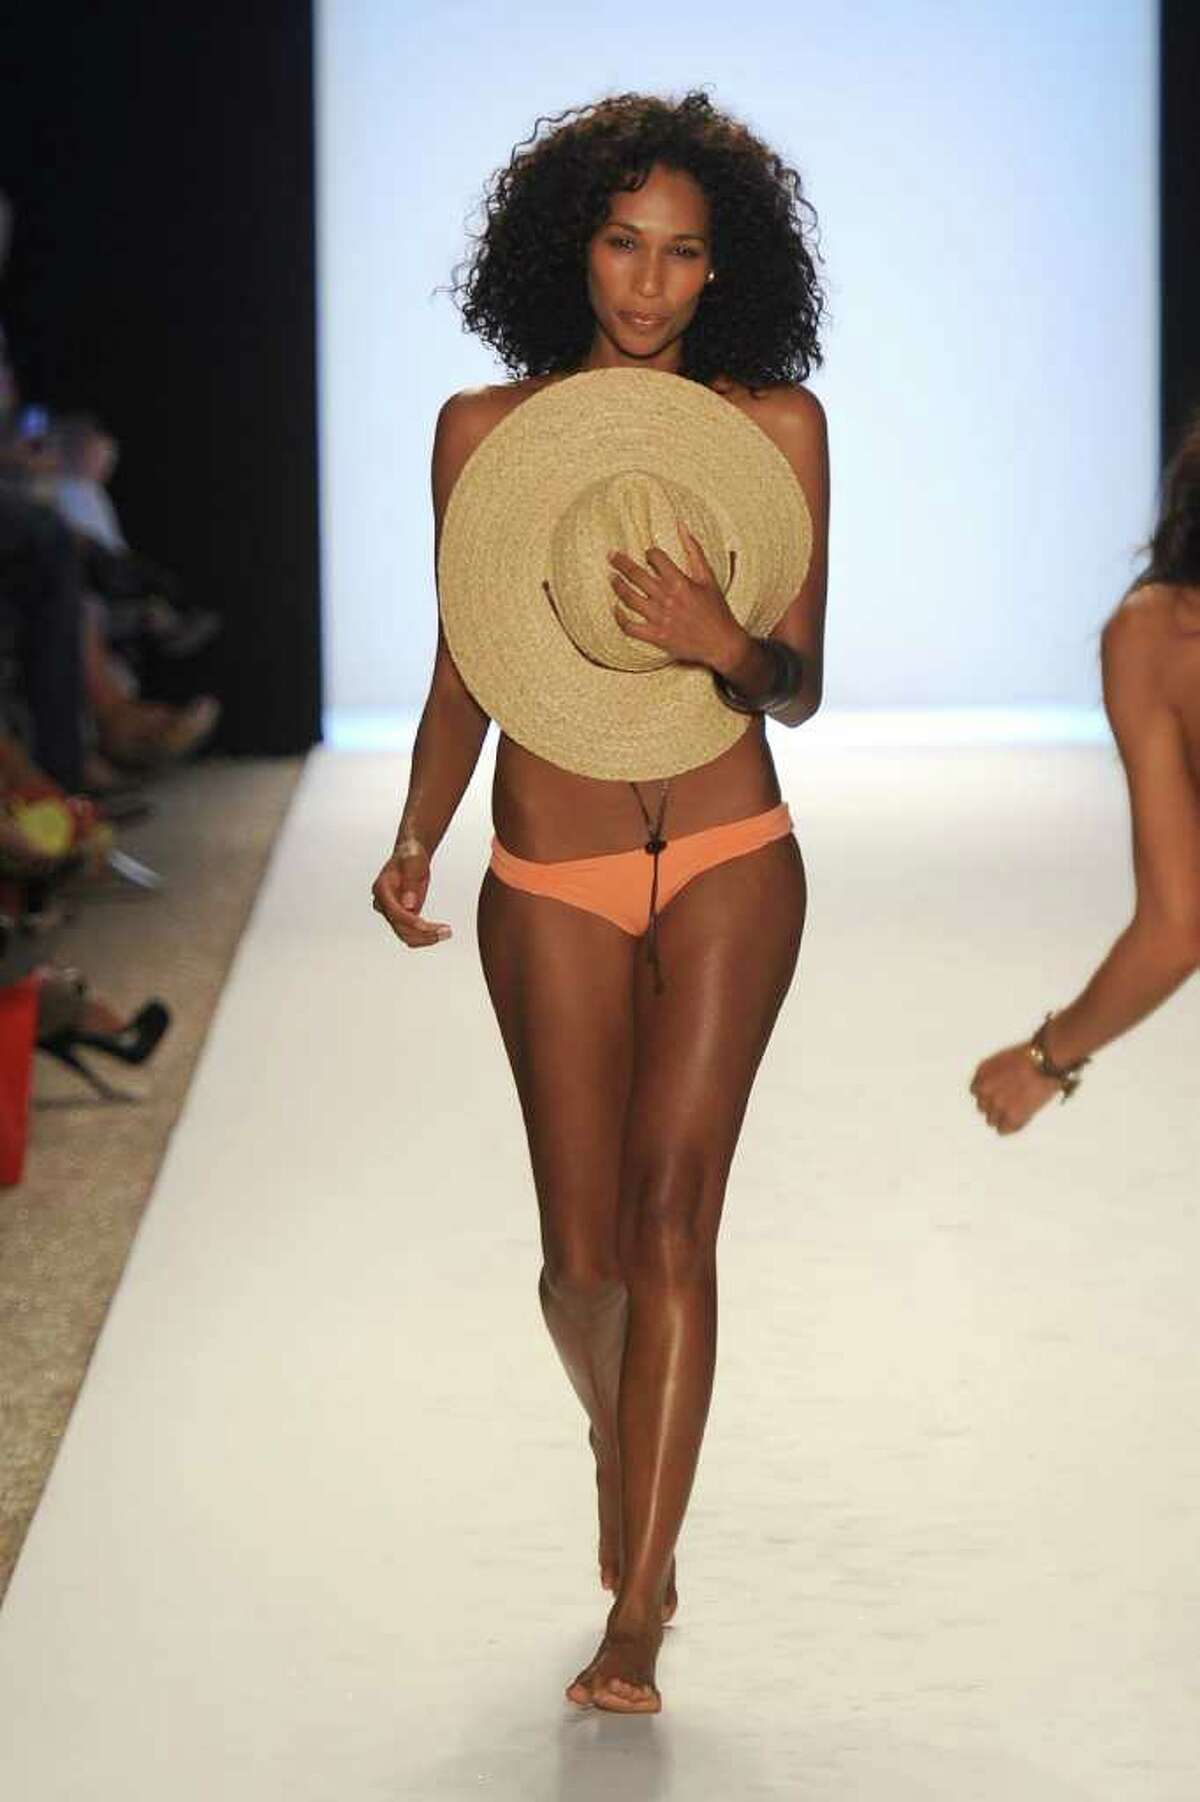 A model walks the runway at the L*SPACE BY MONICA WISE show during Mercedes-Benz Fashion Week Swim at The Raleigh in Miami Beach, Fla., on Friday, July 15, 2011.